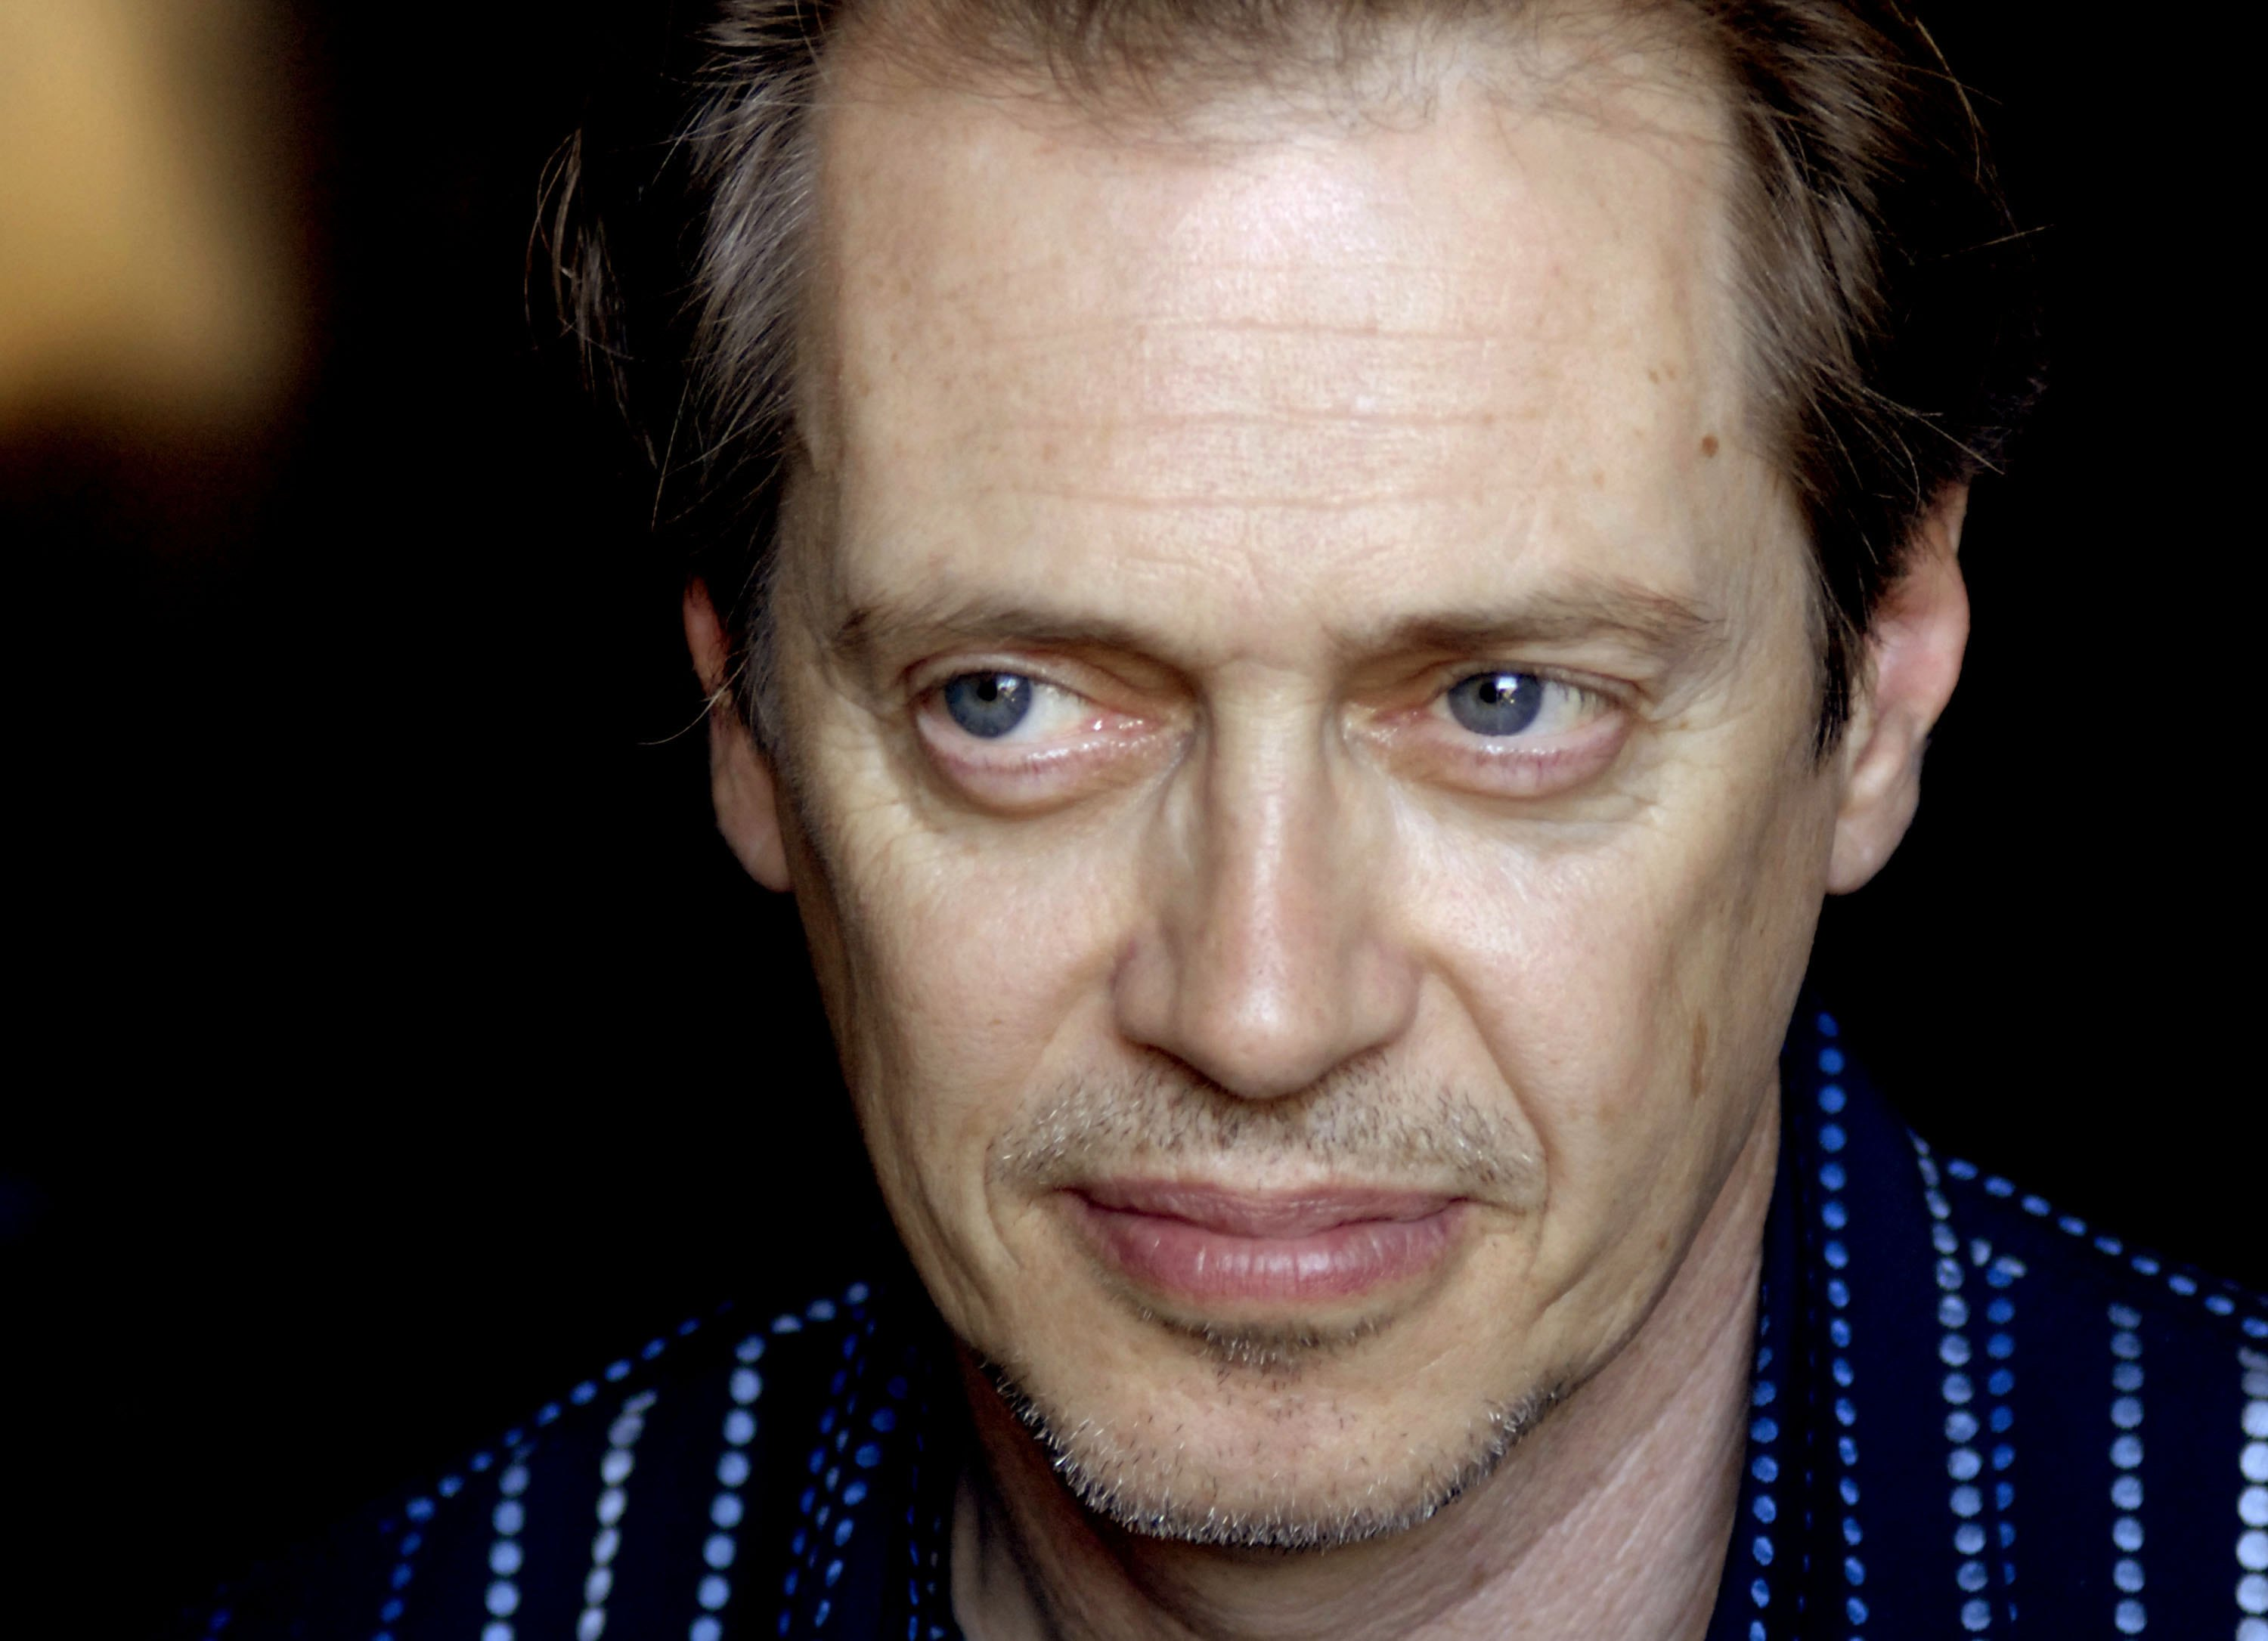 3000x2171 Steve Buscemi Browser Themes Desktop Images 3000x2171